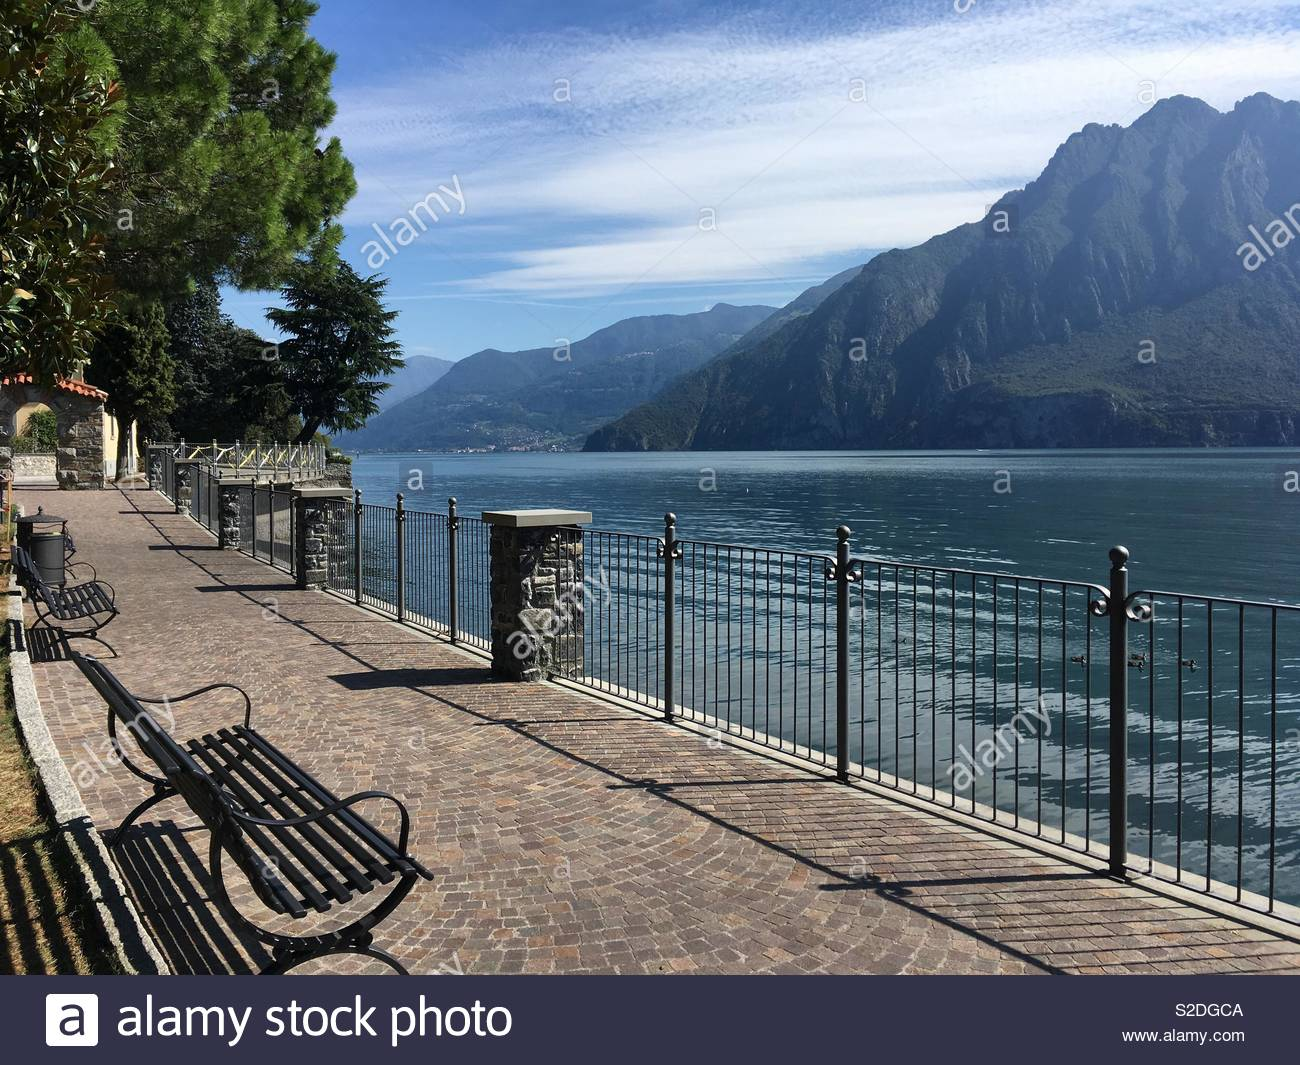 Pavement by lake Iseo - Stock Image